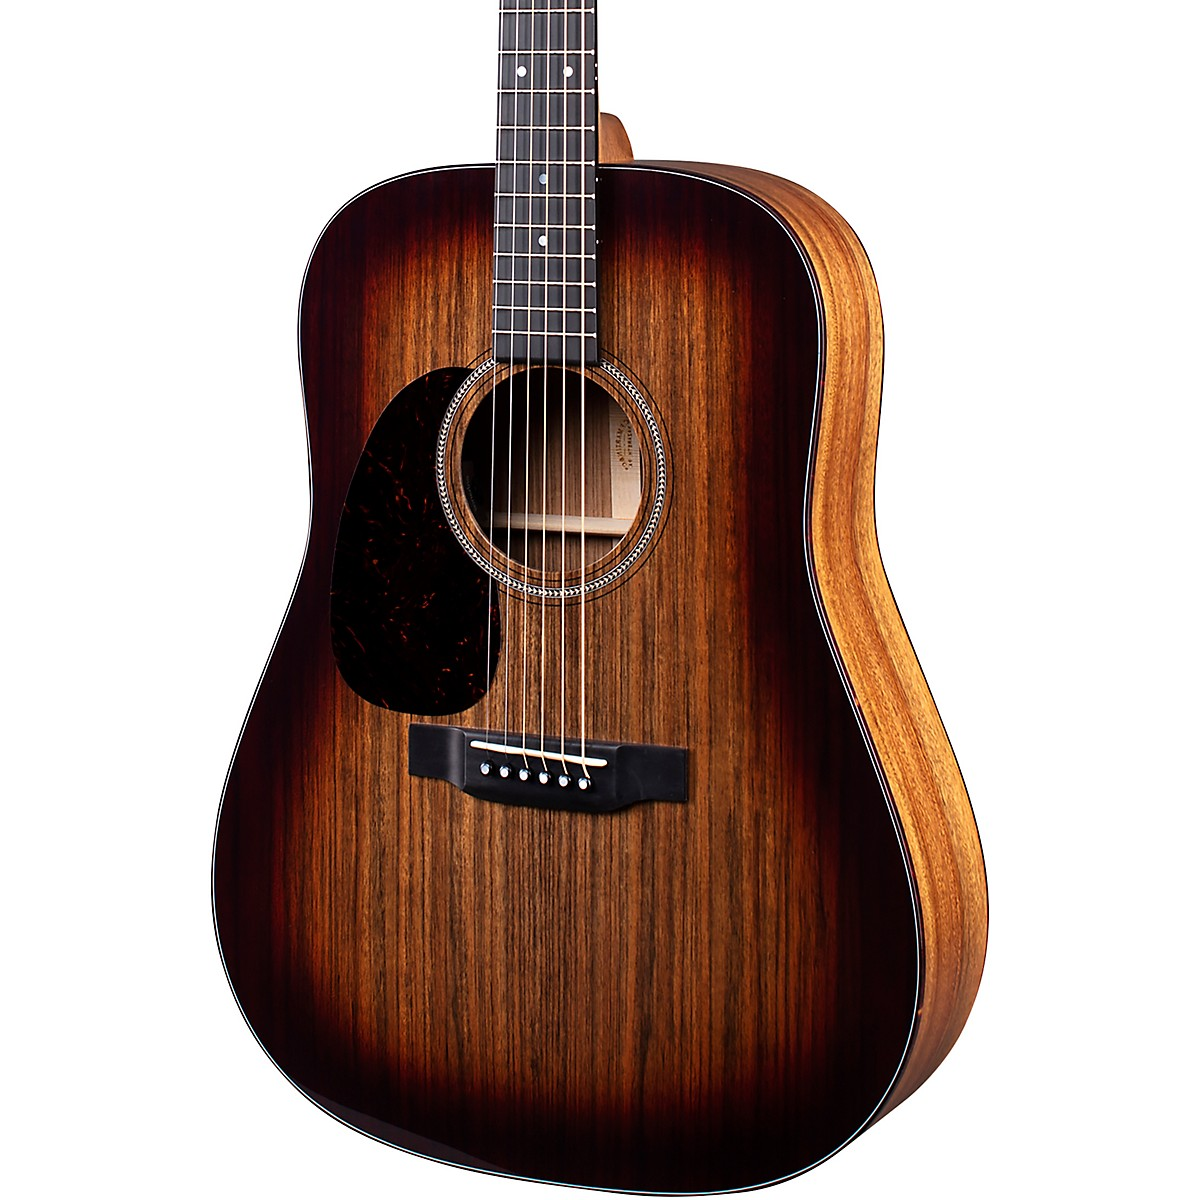 Martin D-16E 16 Series Ovangkol Burst Left-Handed Acoustic-Electric Guitar